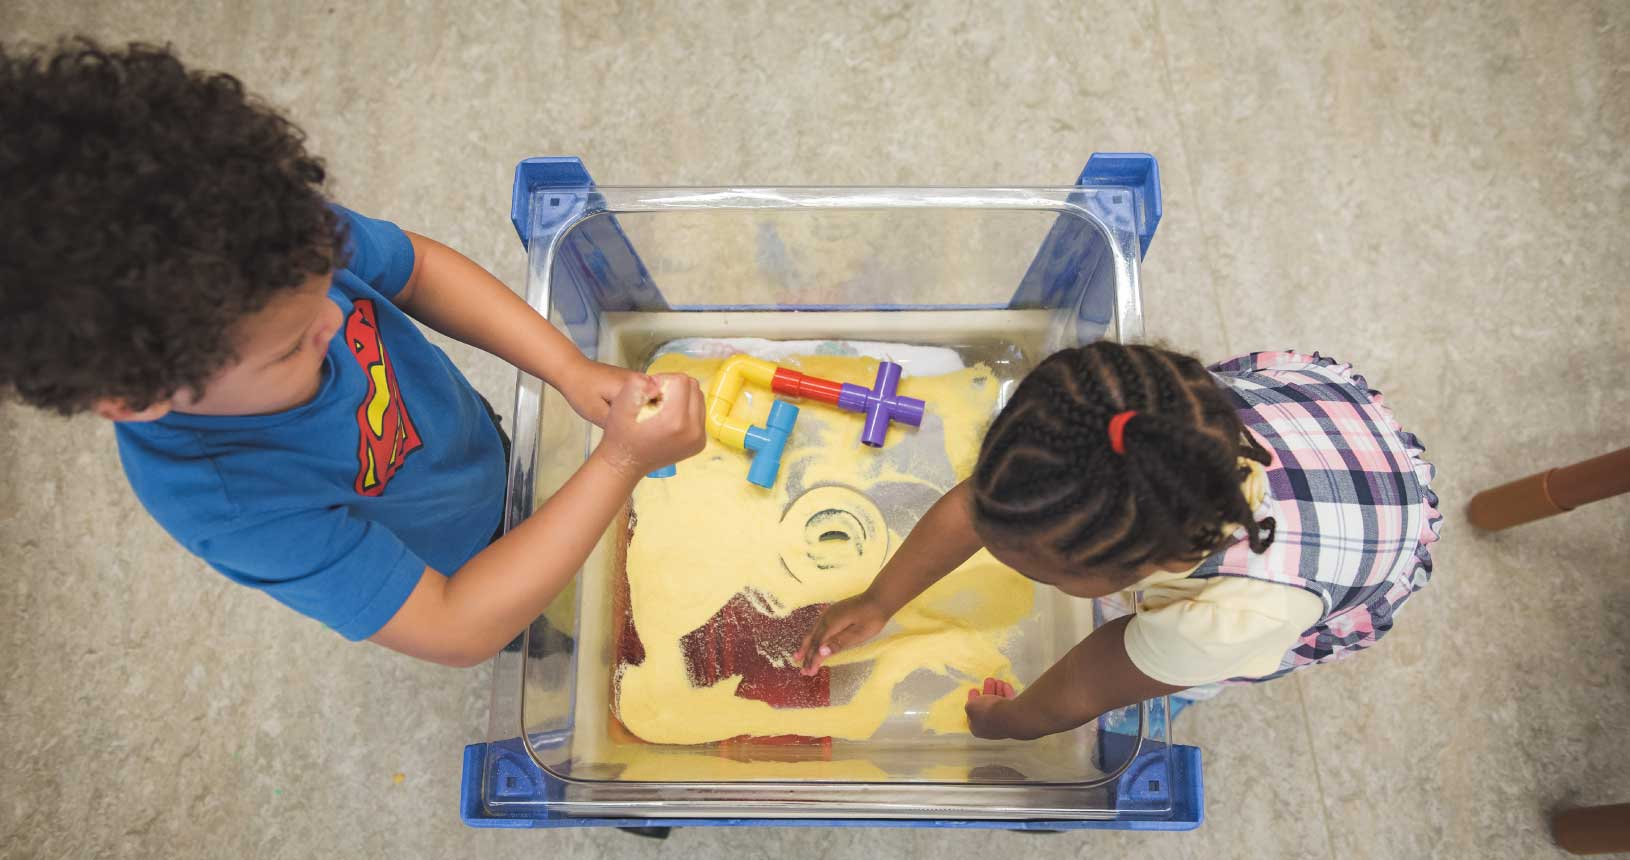 Two children are playing with toys in a box of sand